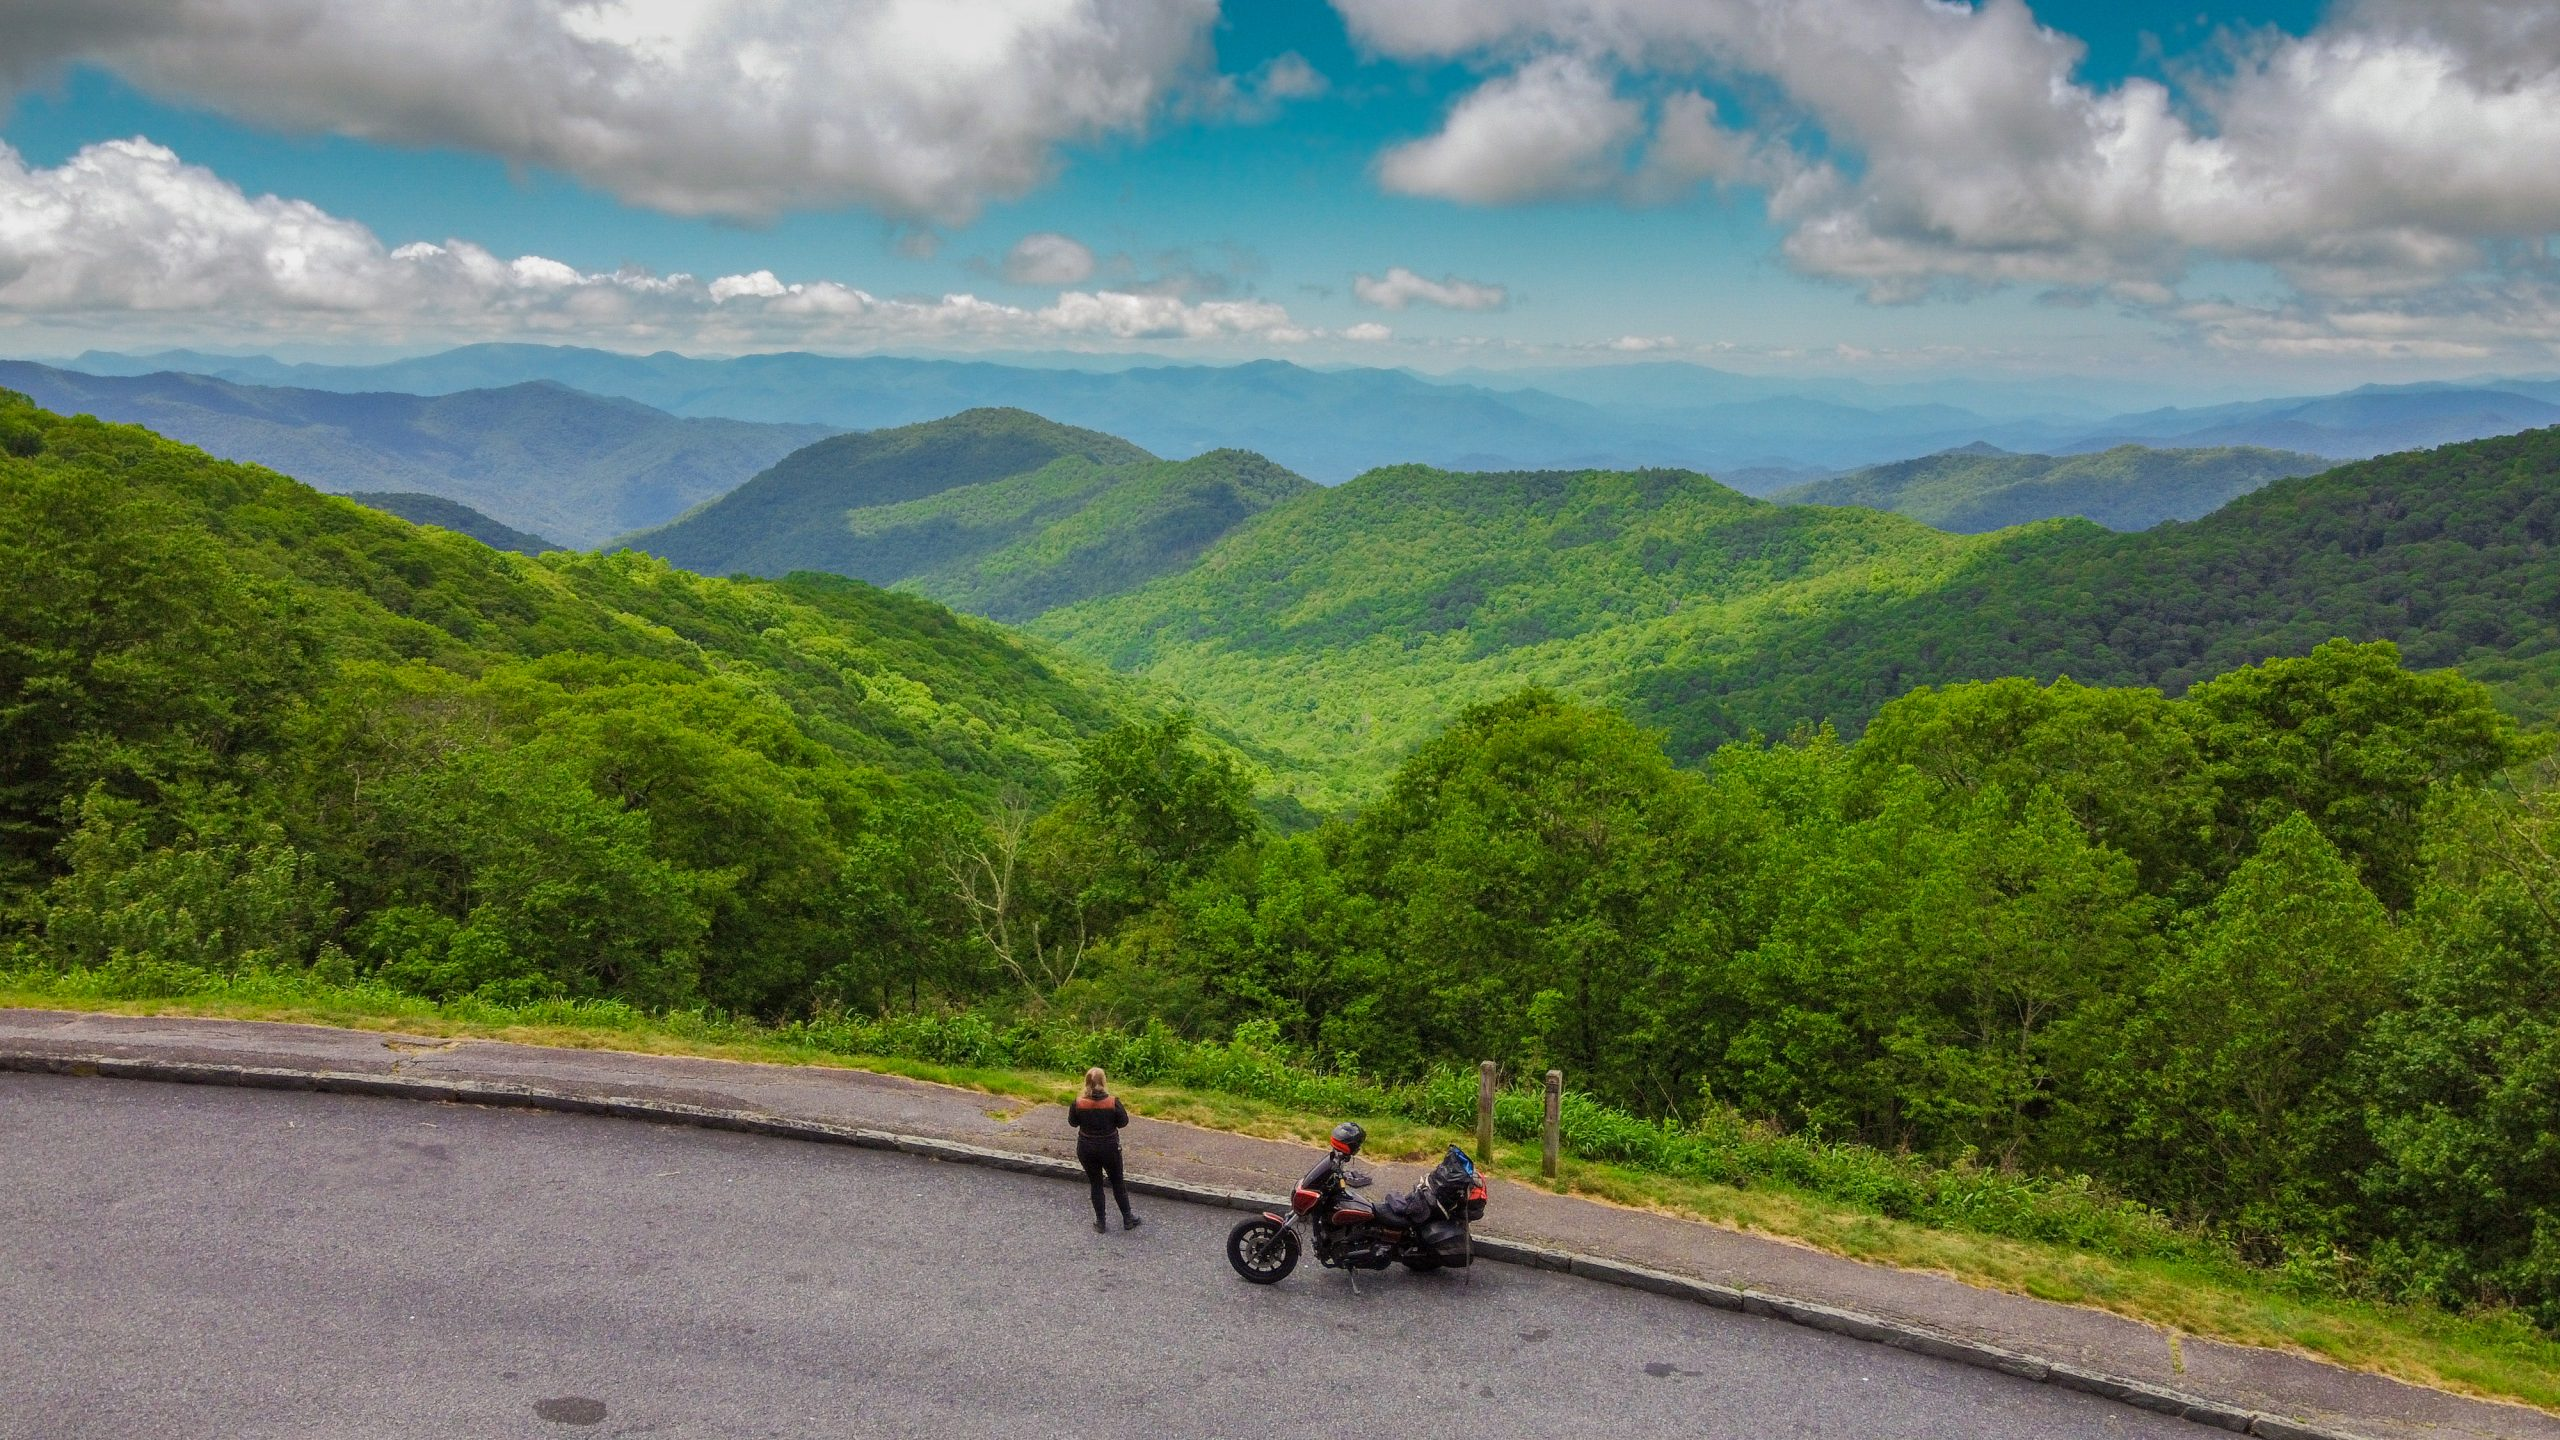 The Best Motorcycle Roads of the Smoky Mountains (That You Can Ride in One Weekend!)